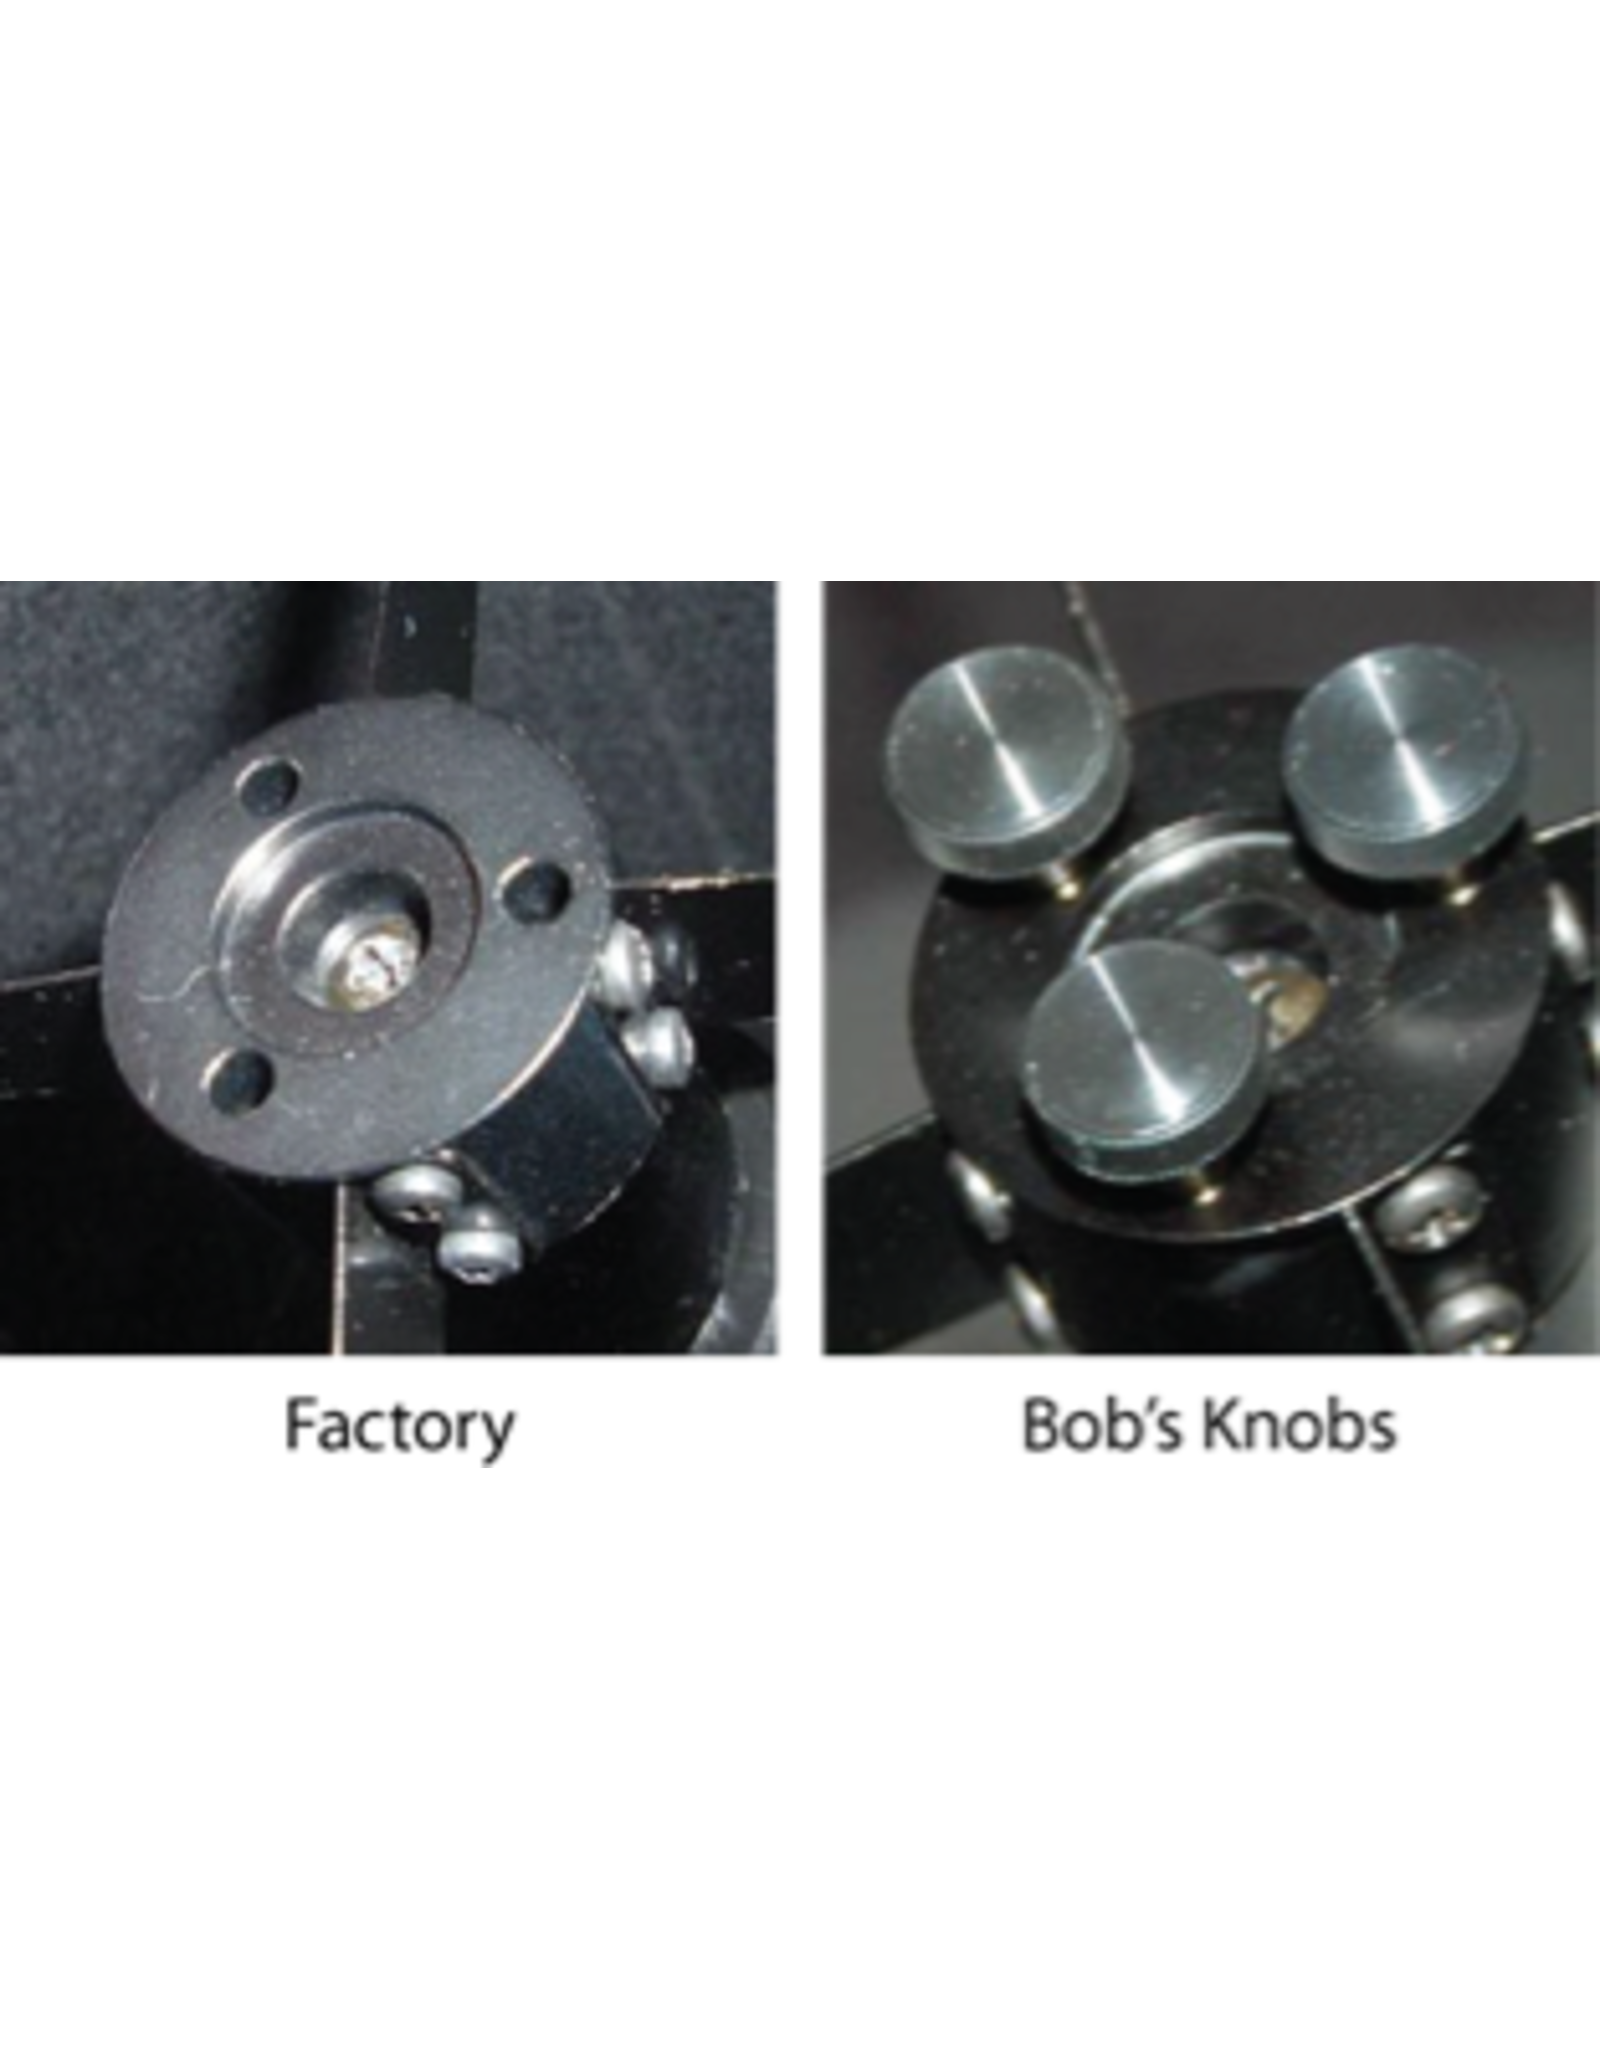 Bob's Knobs CNsec35 Knobs for Newtonian Secondary Set Screw